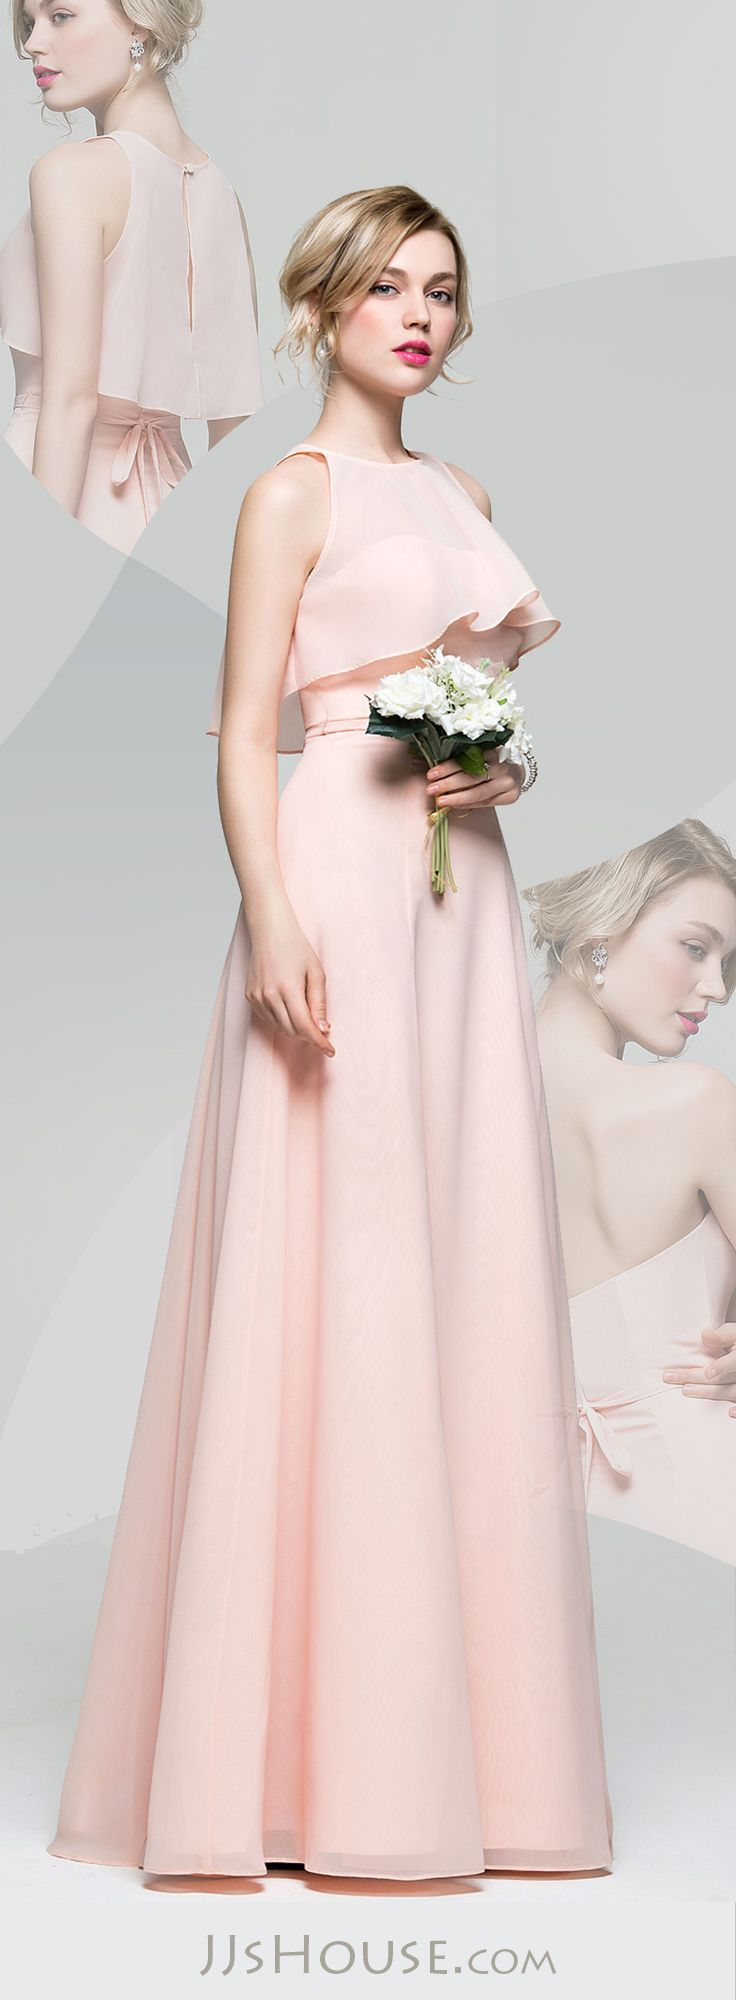 cbf4b65ec49 A-Line Princess Sweetheart Floor-Length Chiffon Bridesmaid Dress With Bow(s)